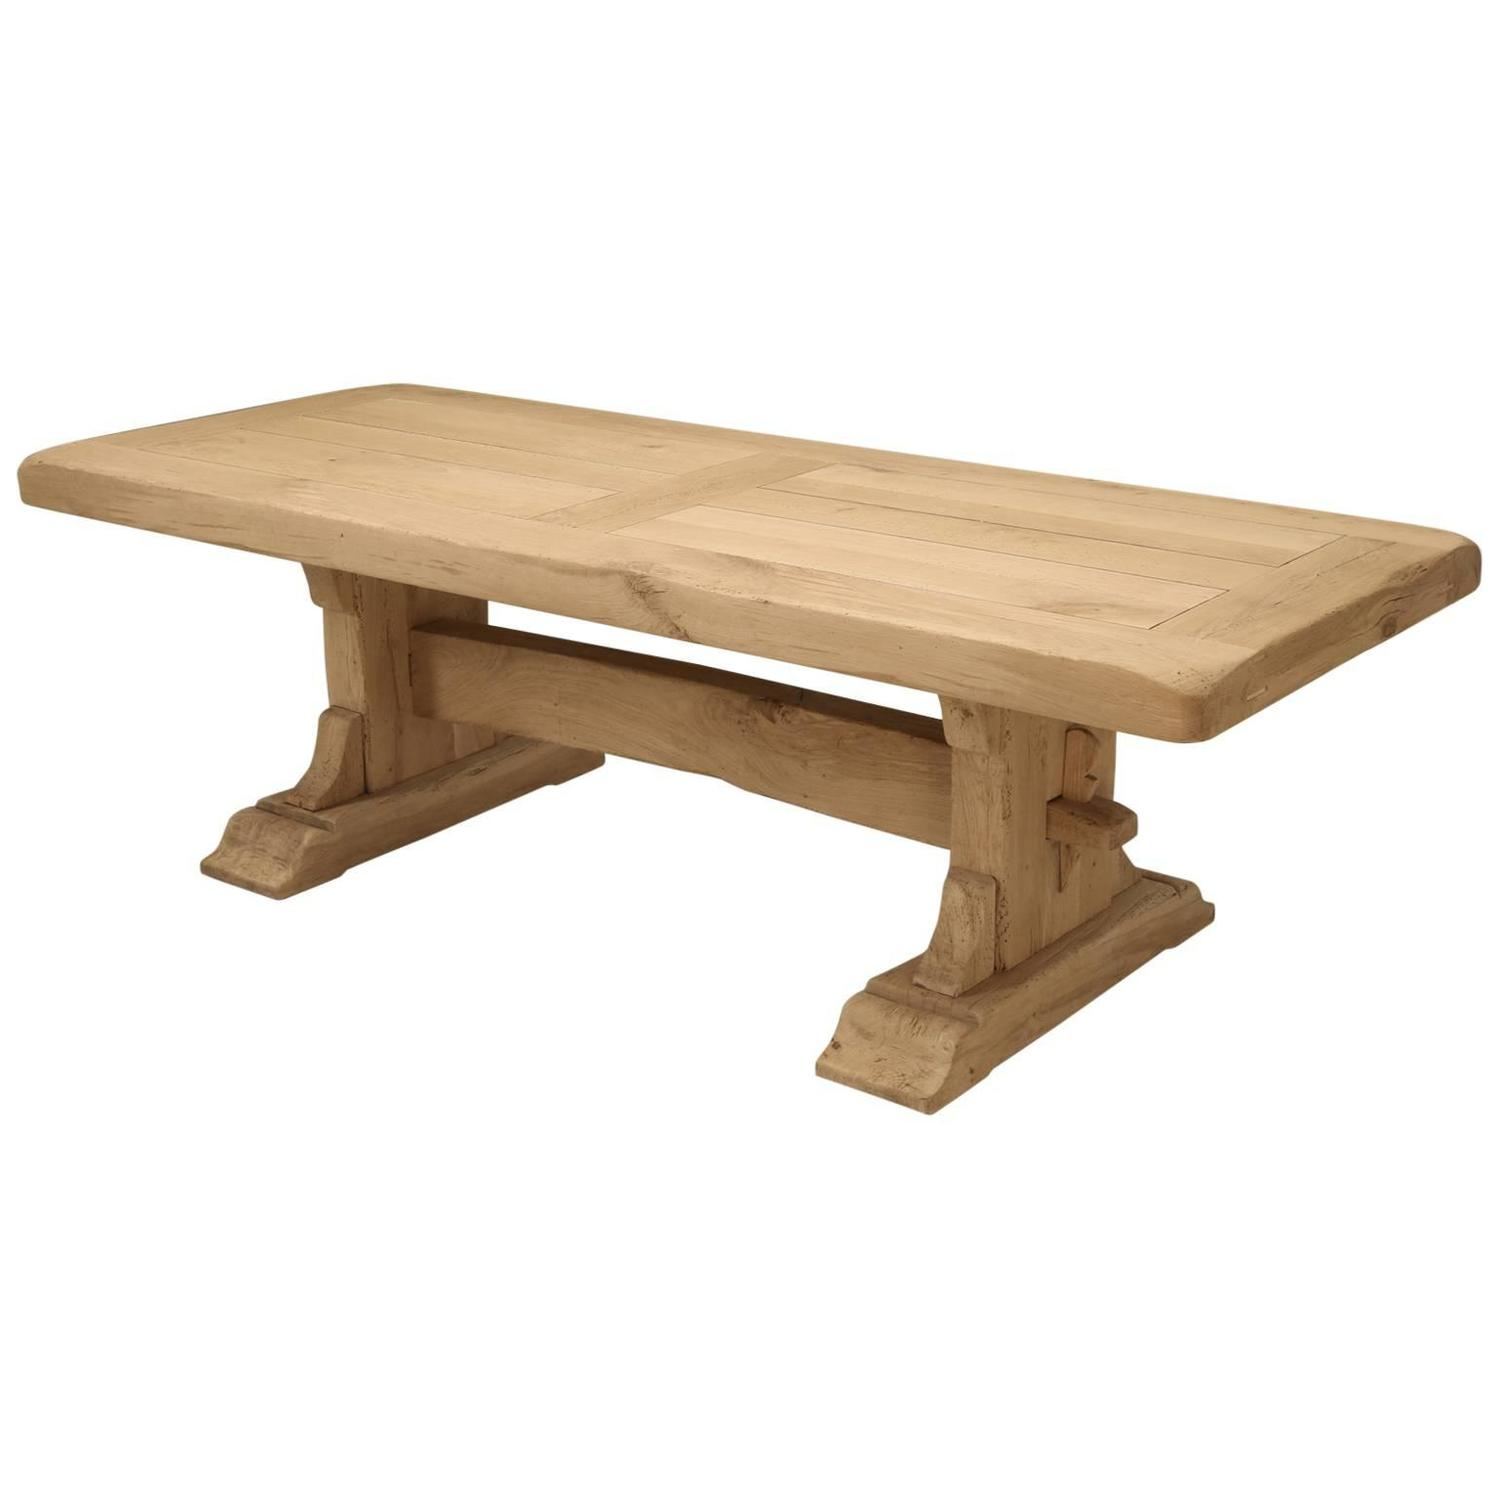 Antique French Oak Trestle Dining Table at 1stdibs : 5648983z from www.1stdibs.com size 1500 x 1500 jpeg 57kB